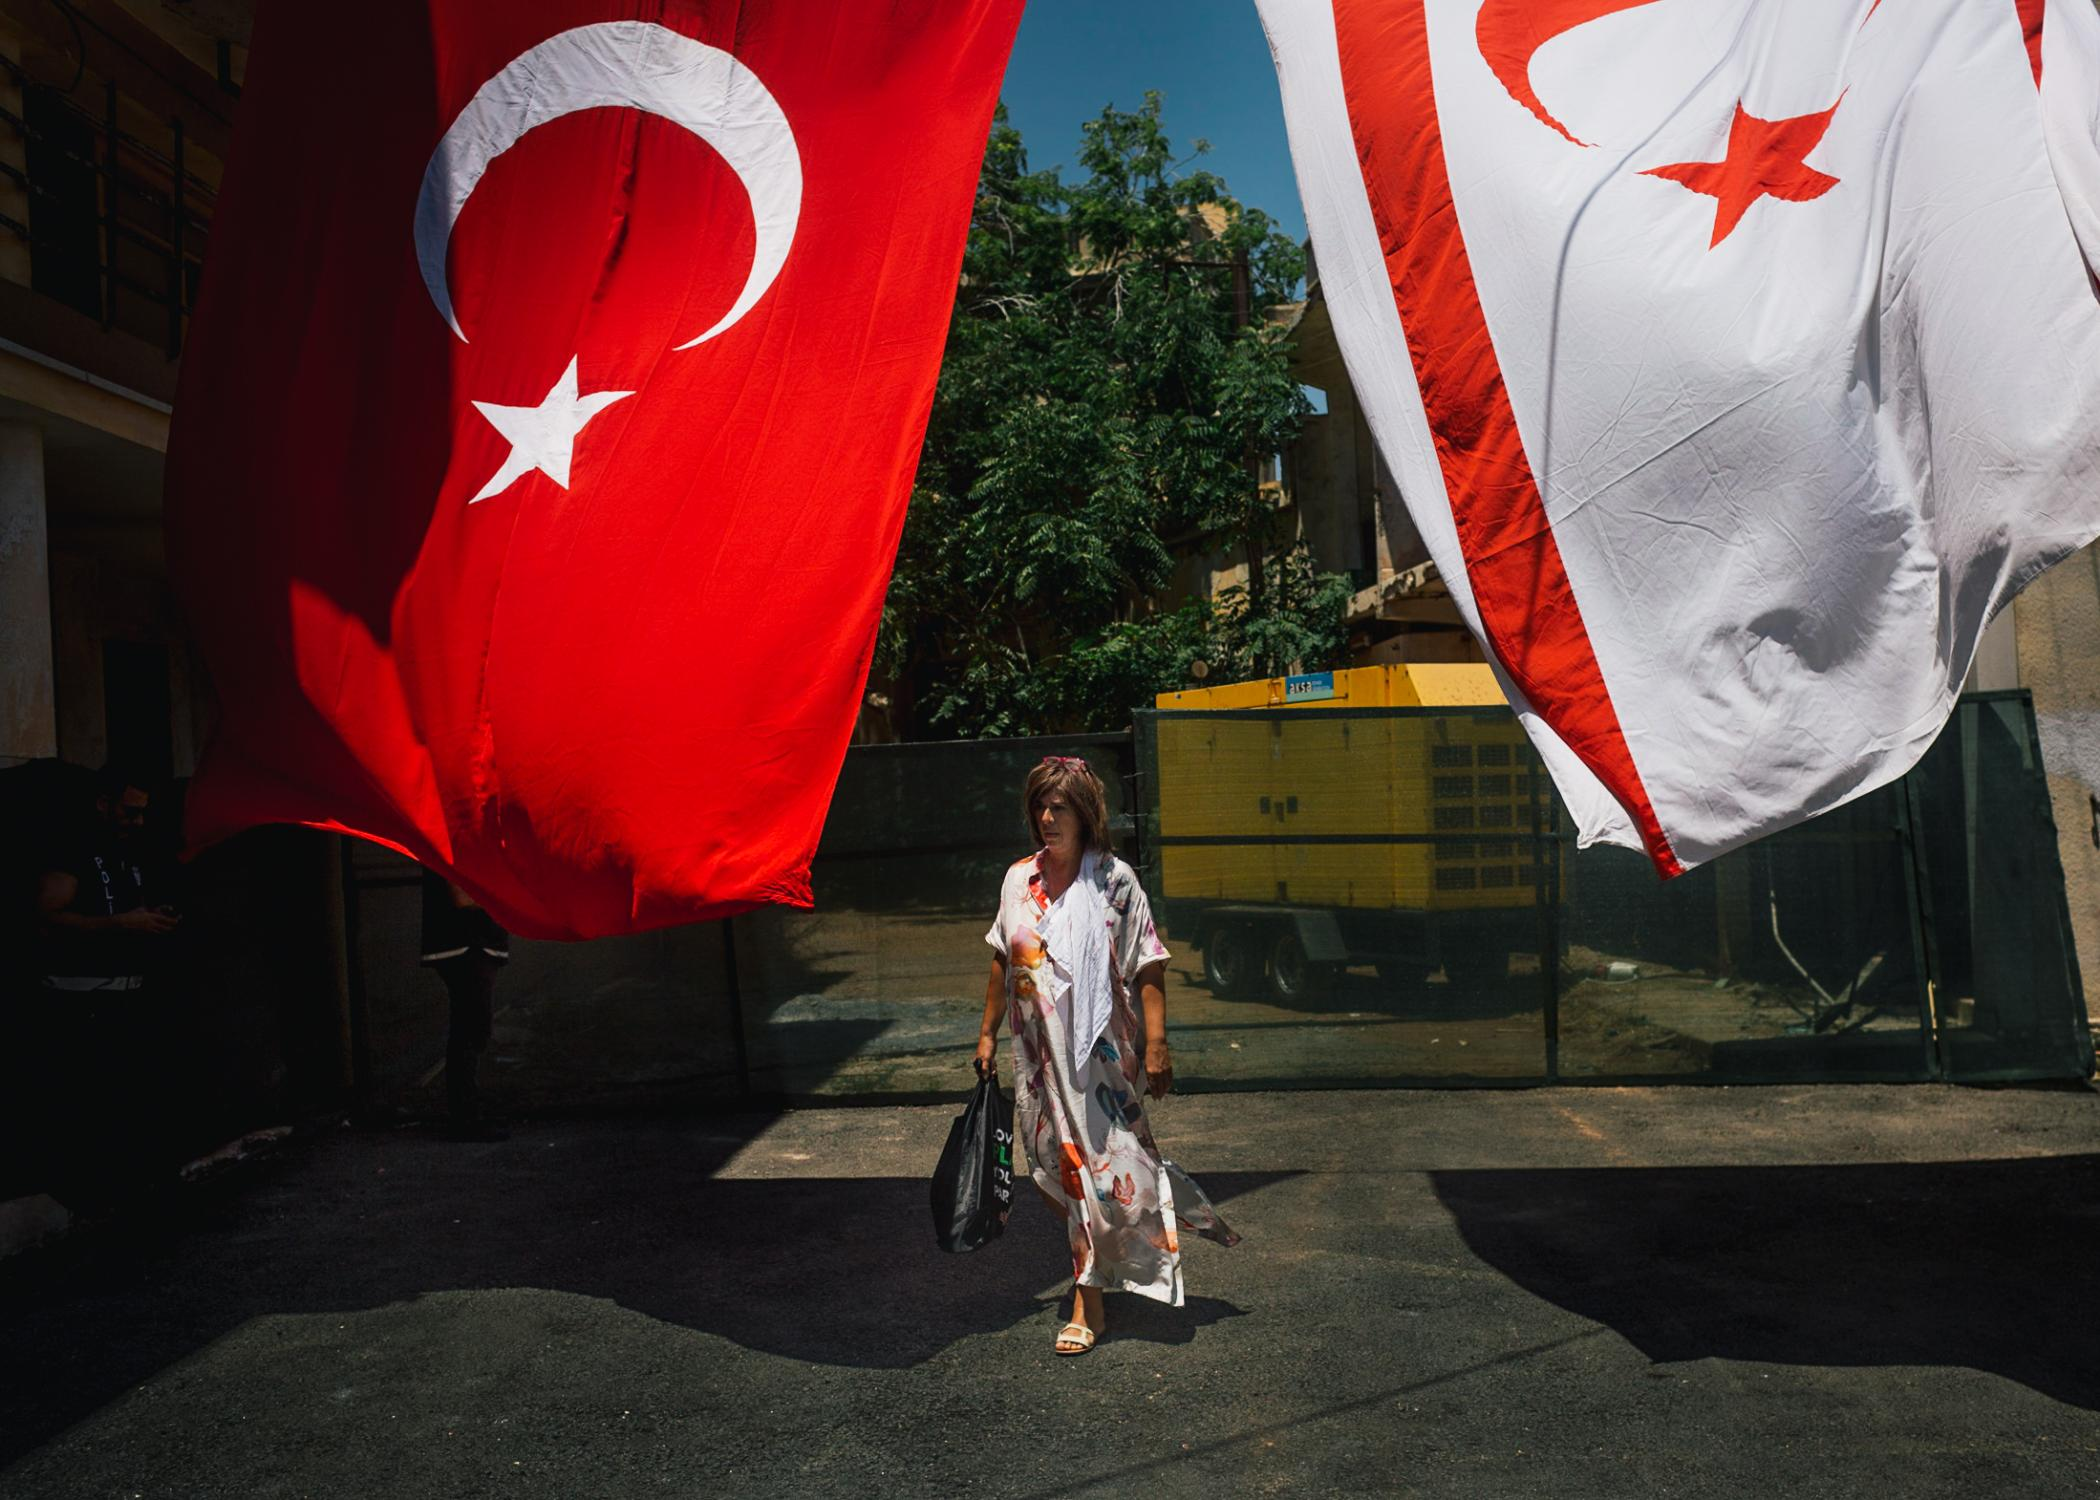 Tasoula Hadjitofi at the opening of a mosque in Famagusta on the occasion of the visit of Turkish President Erdogan.